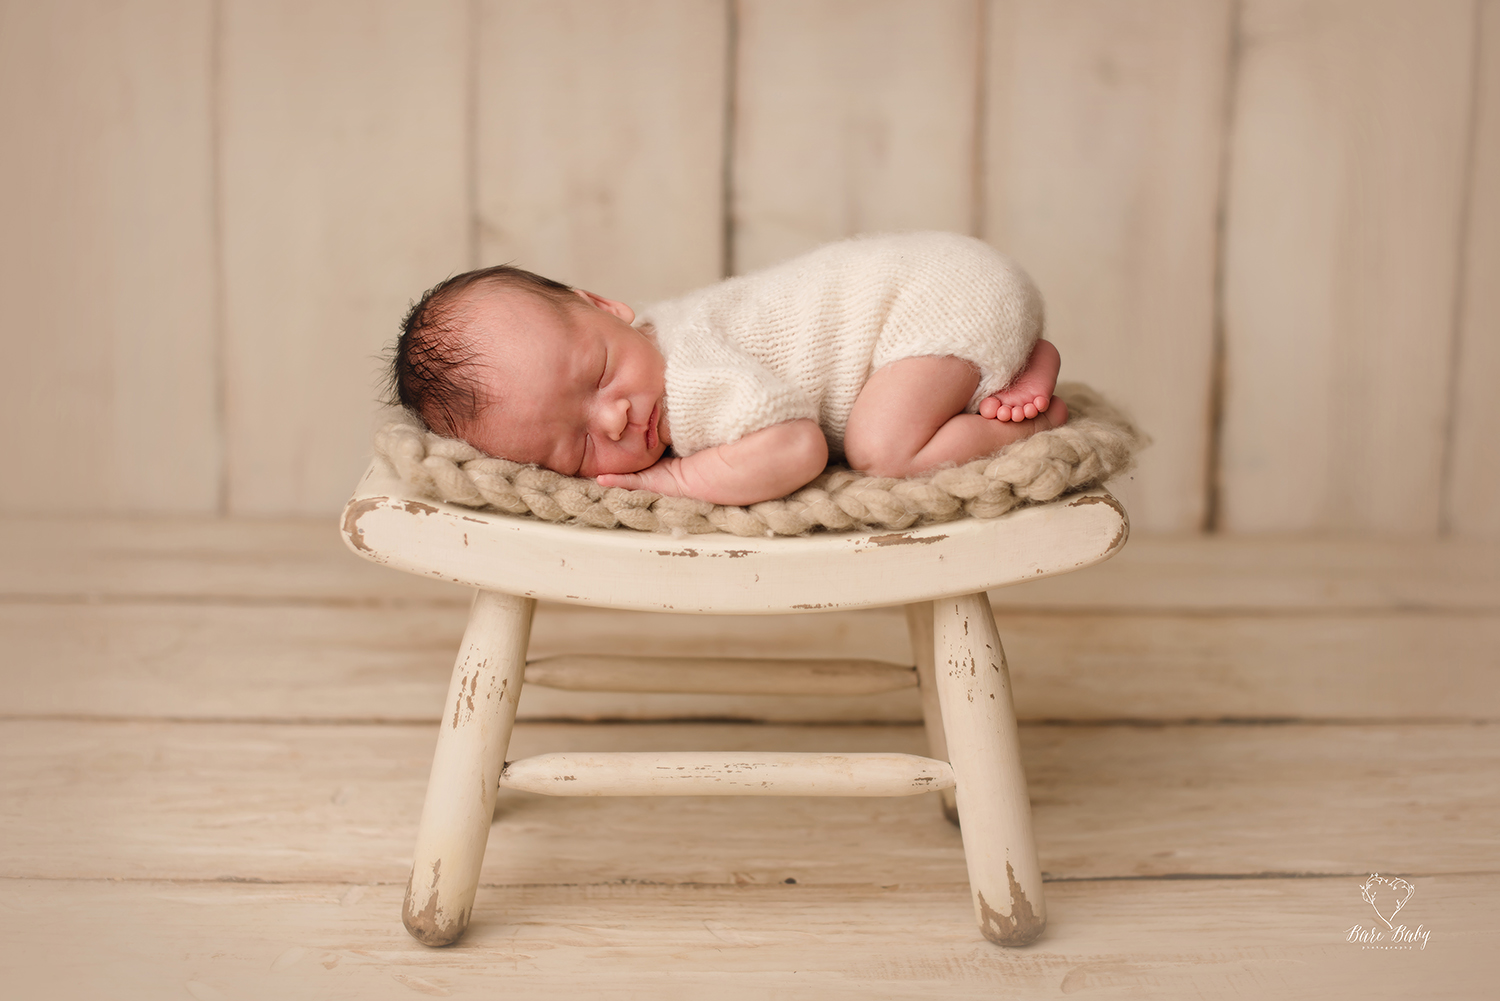 amazing-newborn-photos-columbusohio-barebabyphotography.jpg